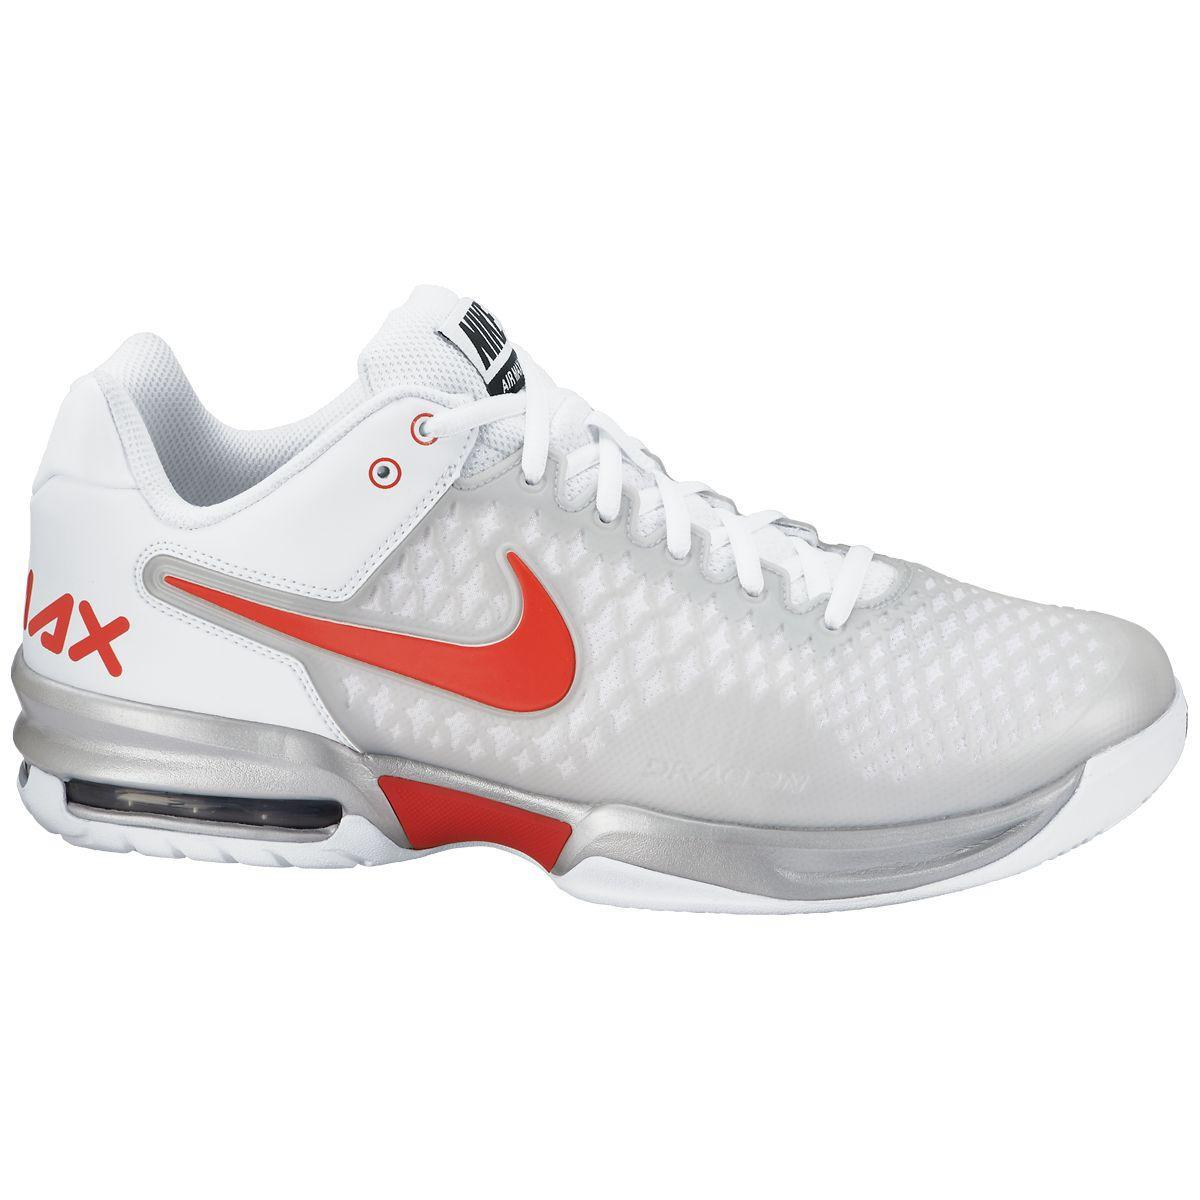 nike mens air max cage tennis shoes silver light crimson